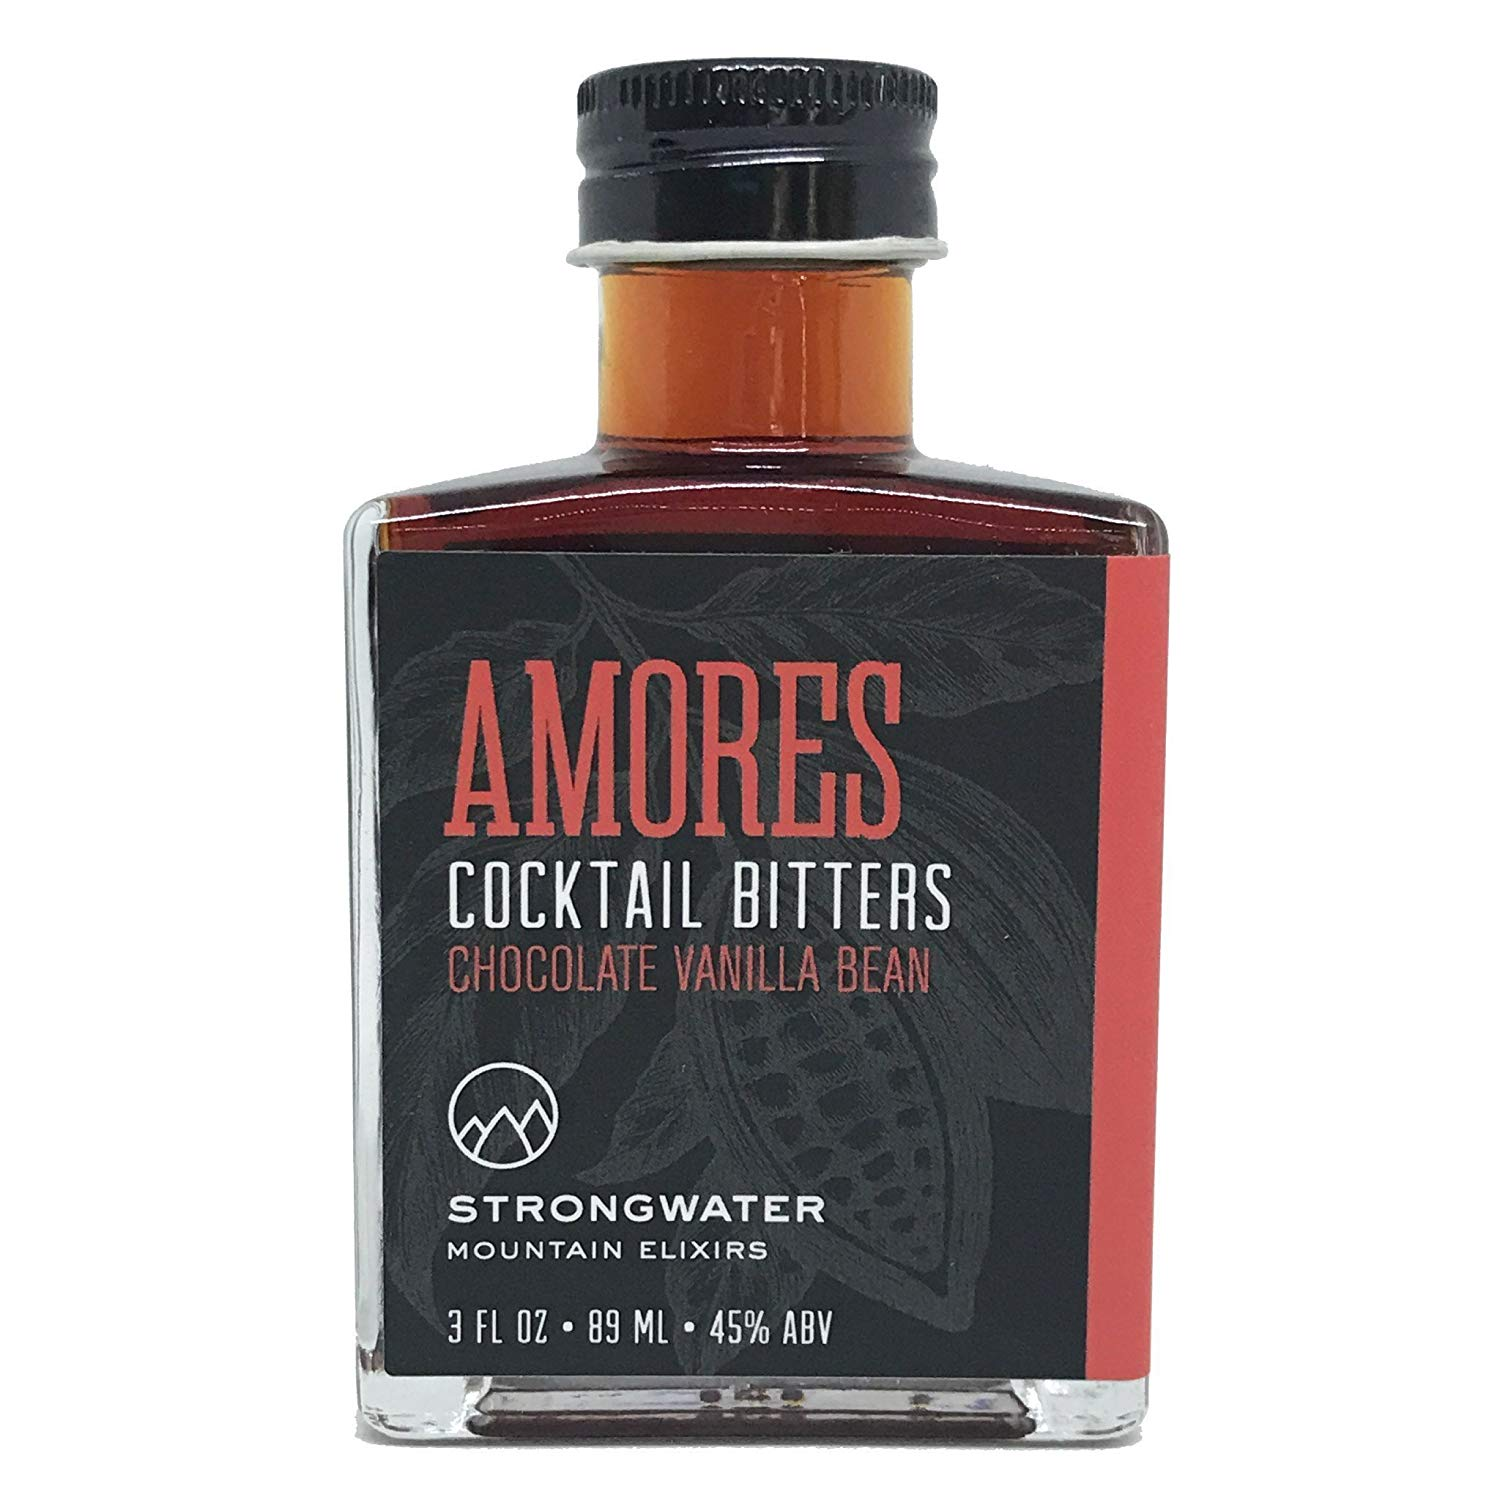 Amores Cocktail Bitters